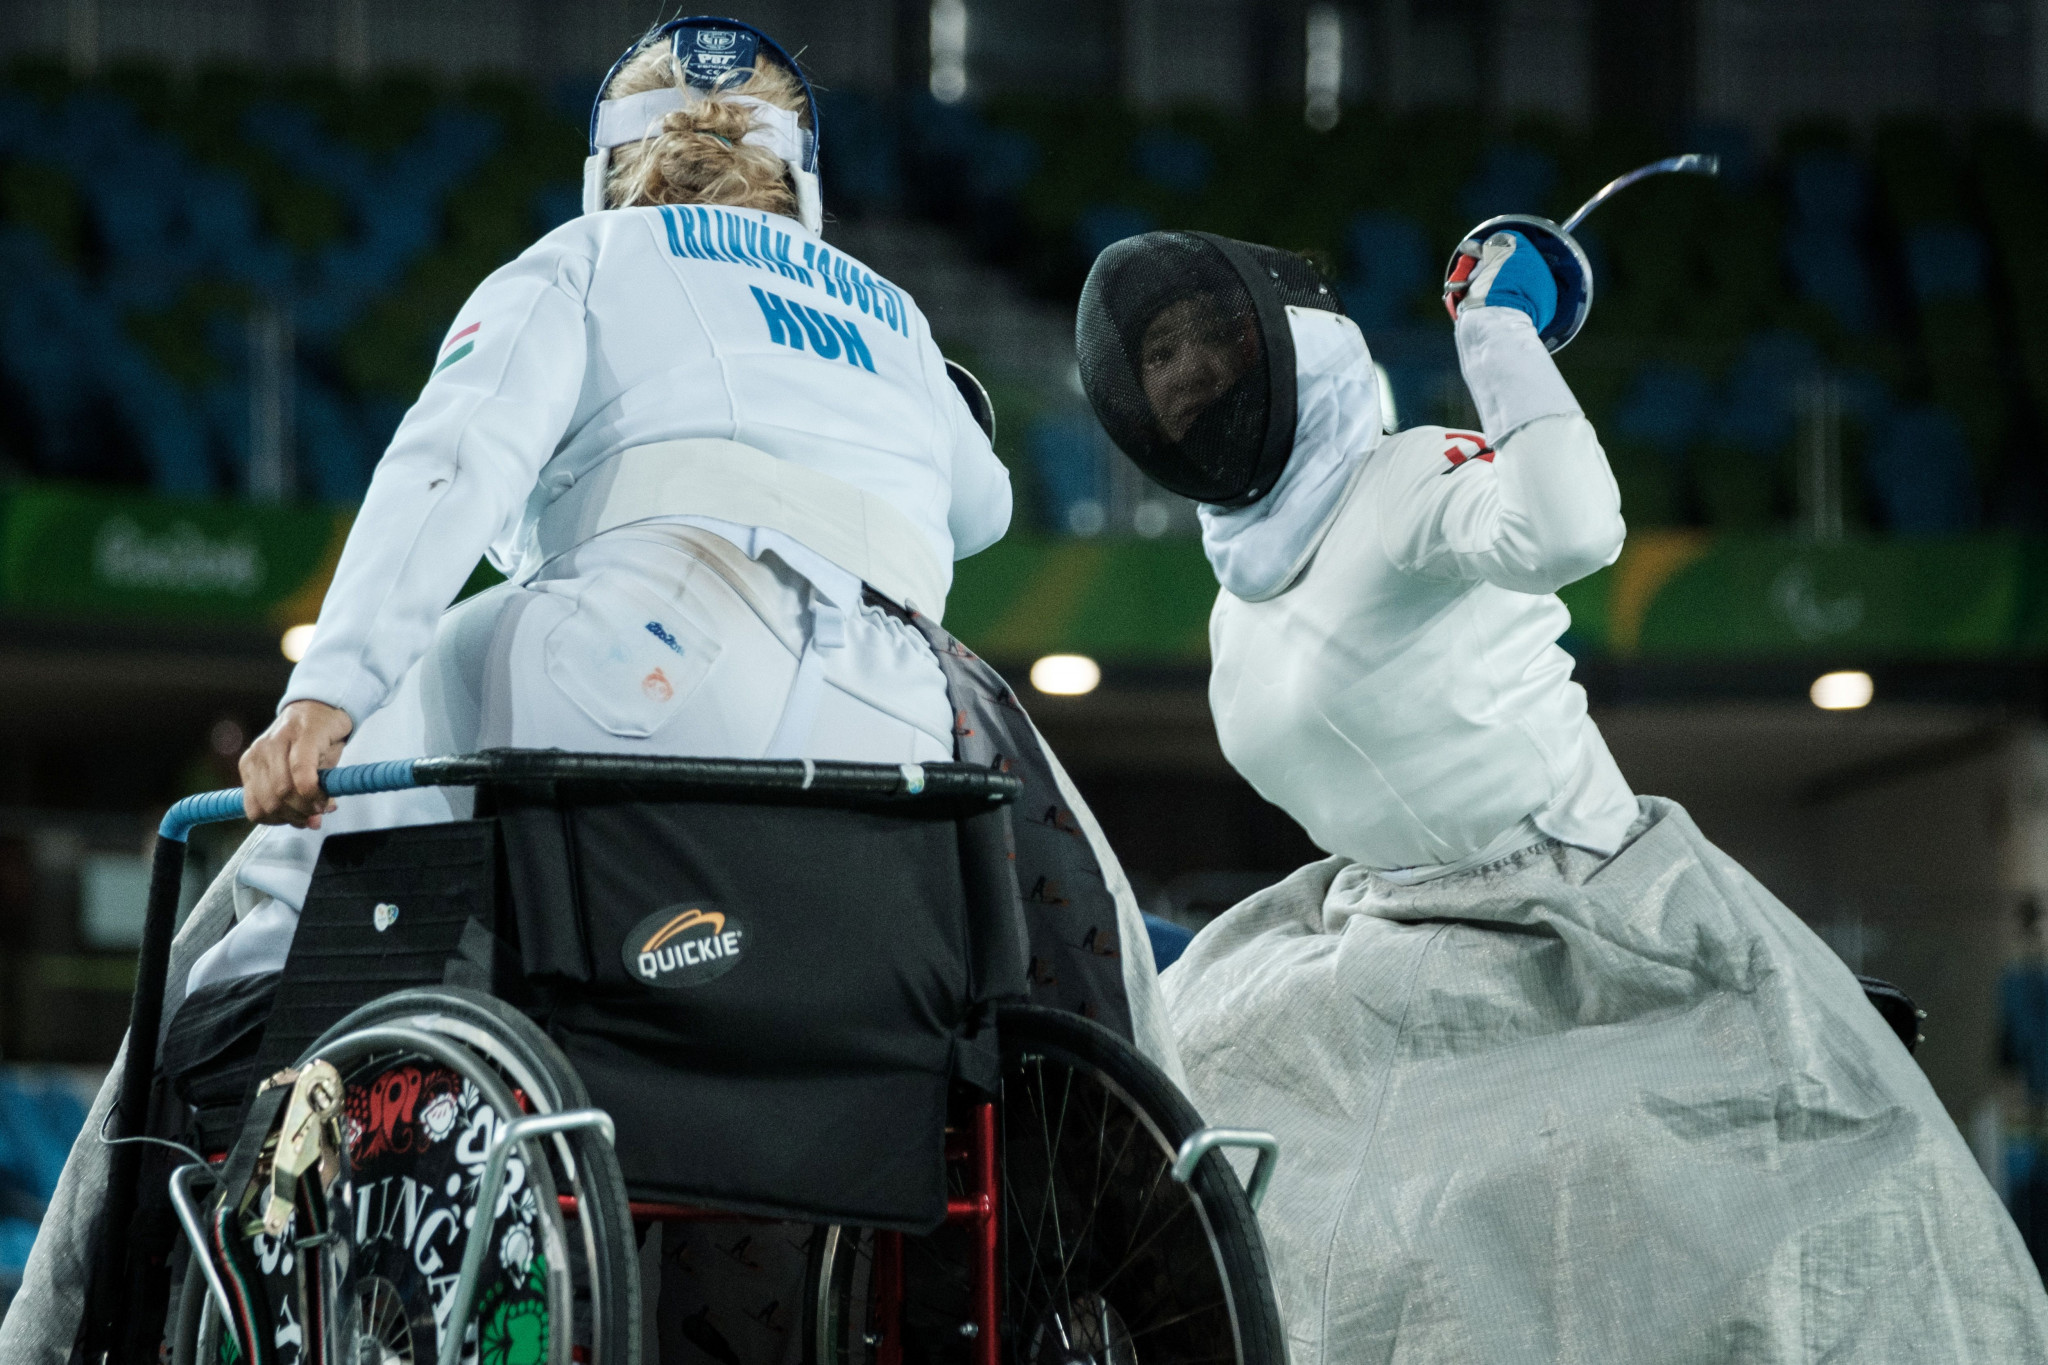 Hungarian world champion wins wheelchair fencing gold at IWAS World Games